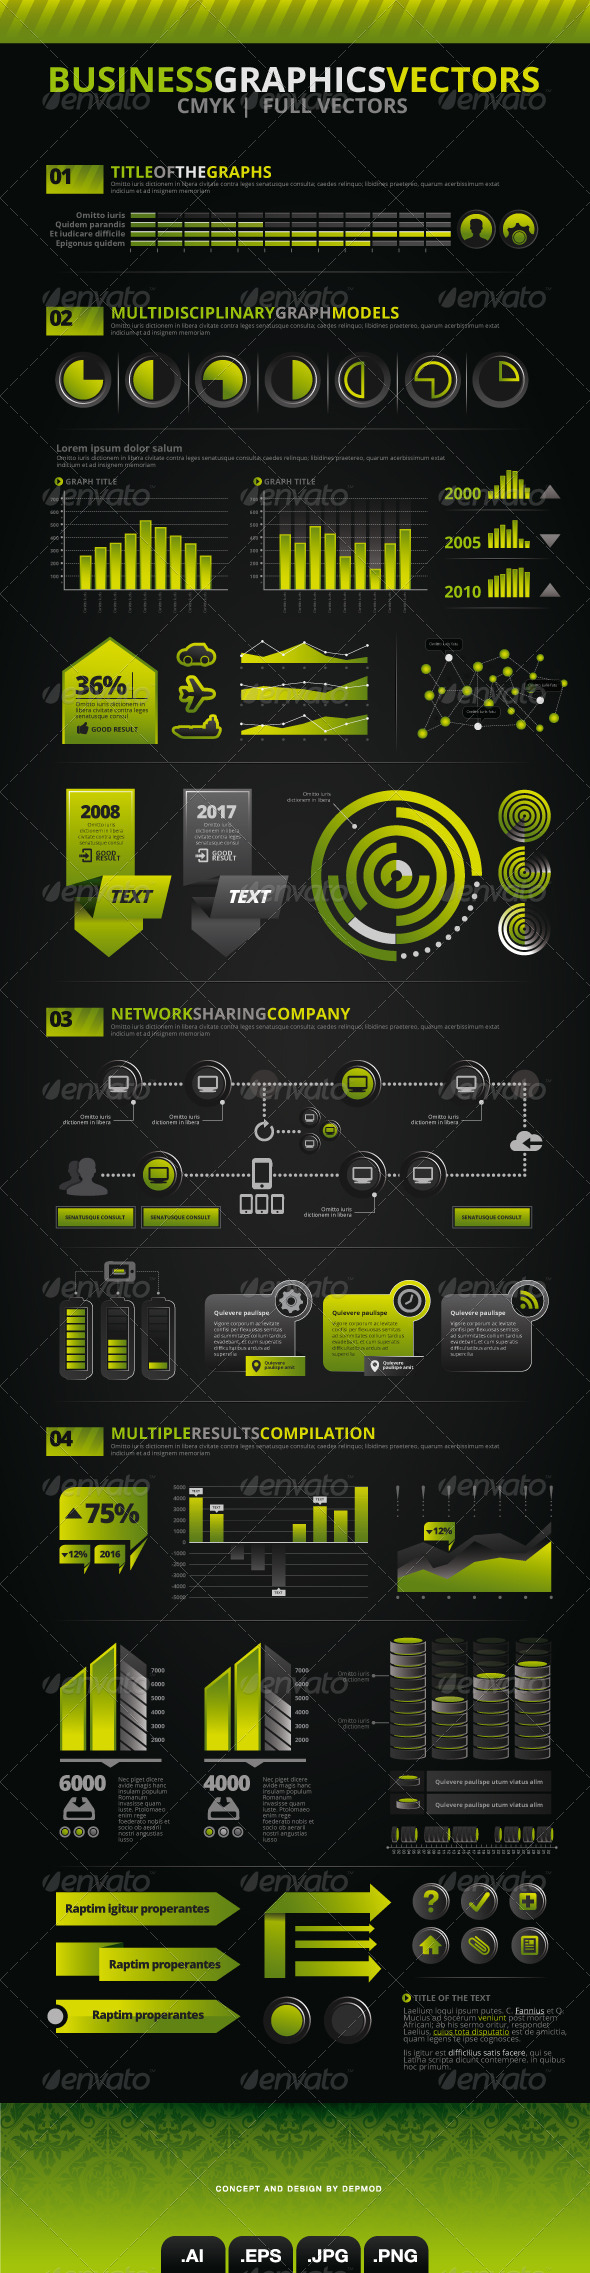 Business Graphics Vectors V.03 - Infographics